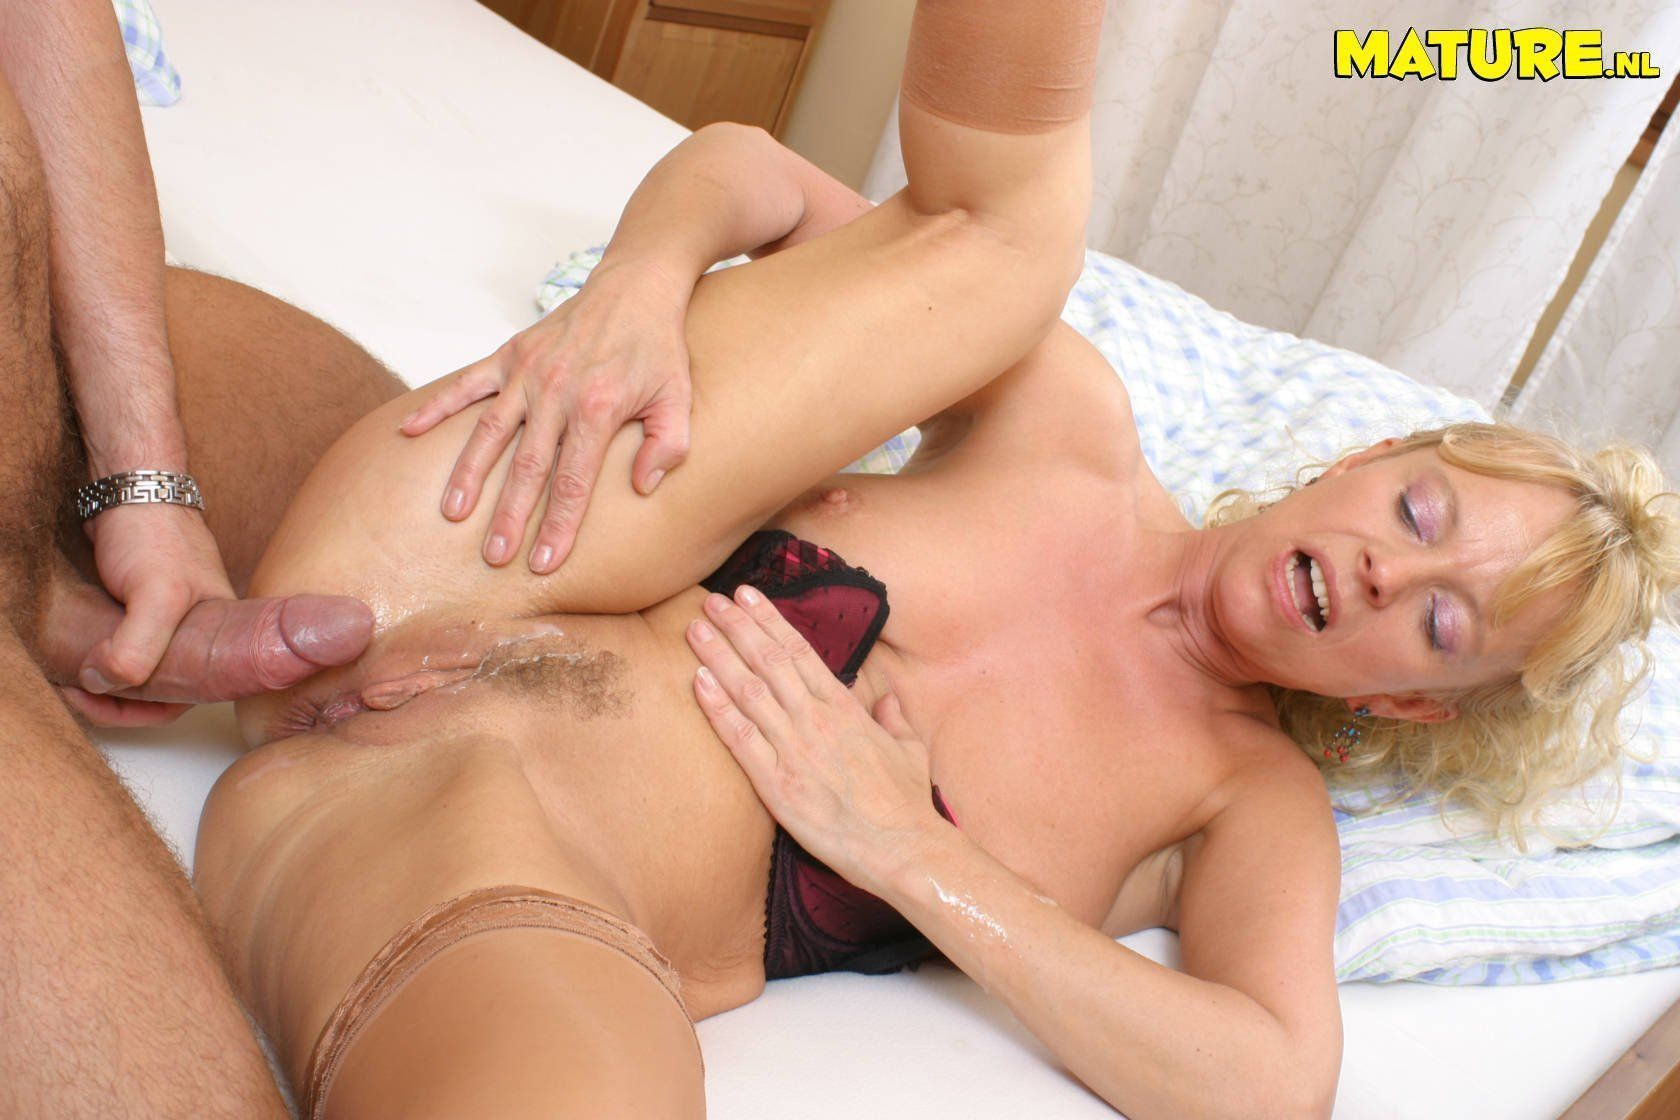 Hot mature moms fucking porn happens. can